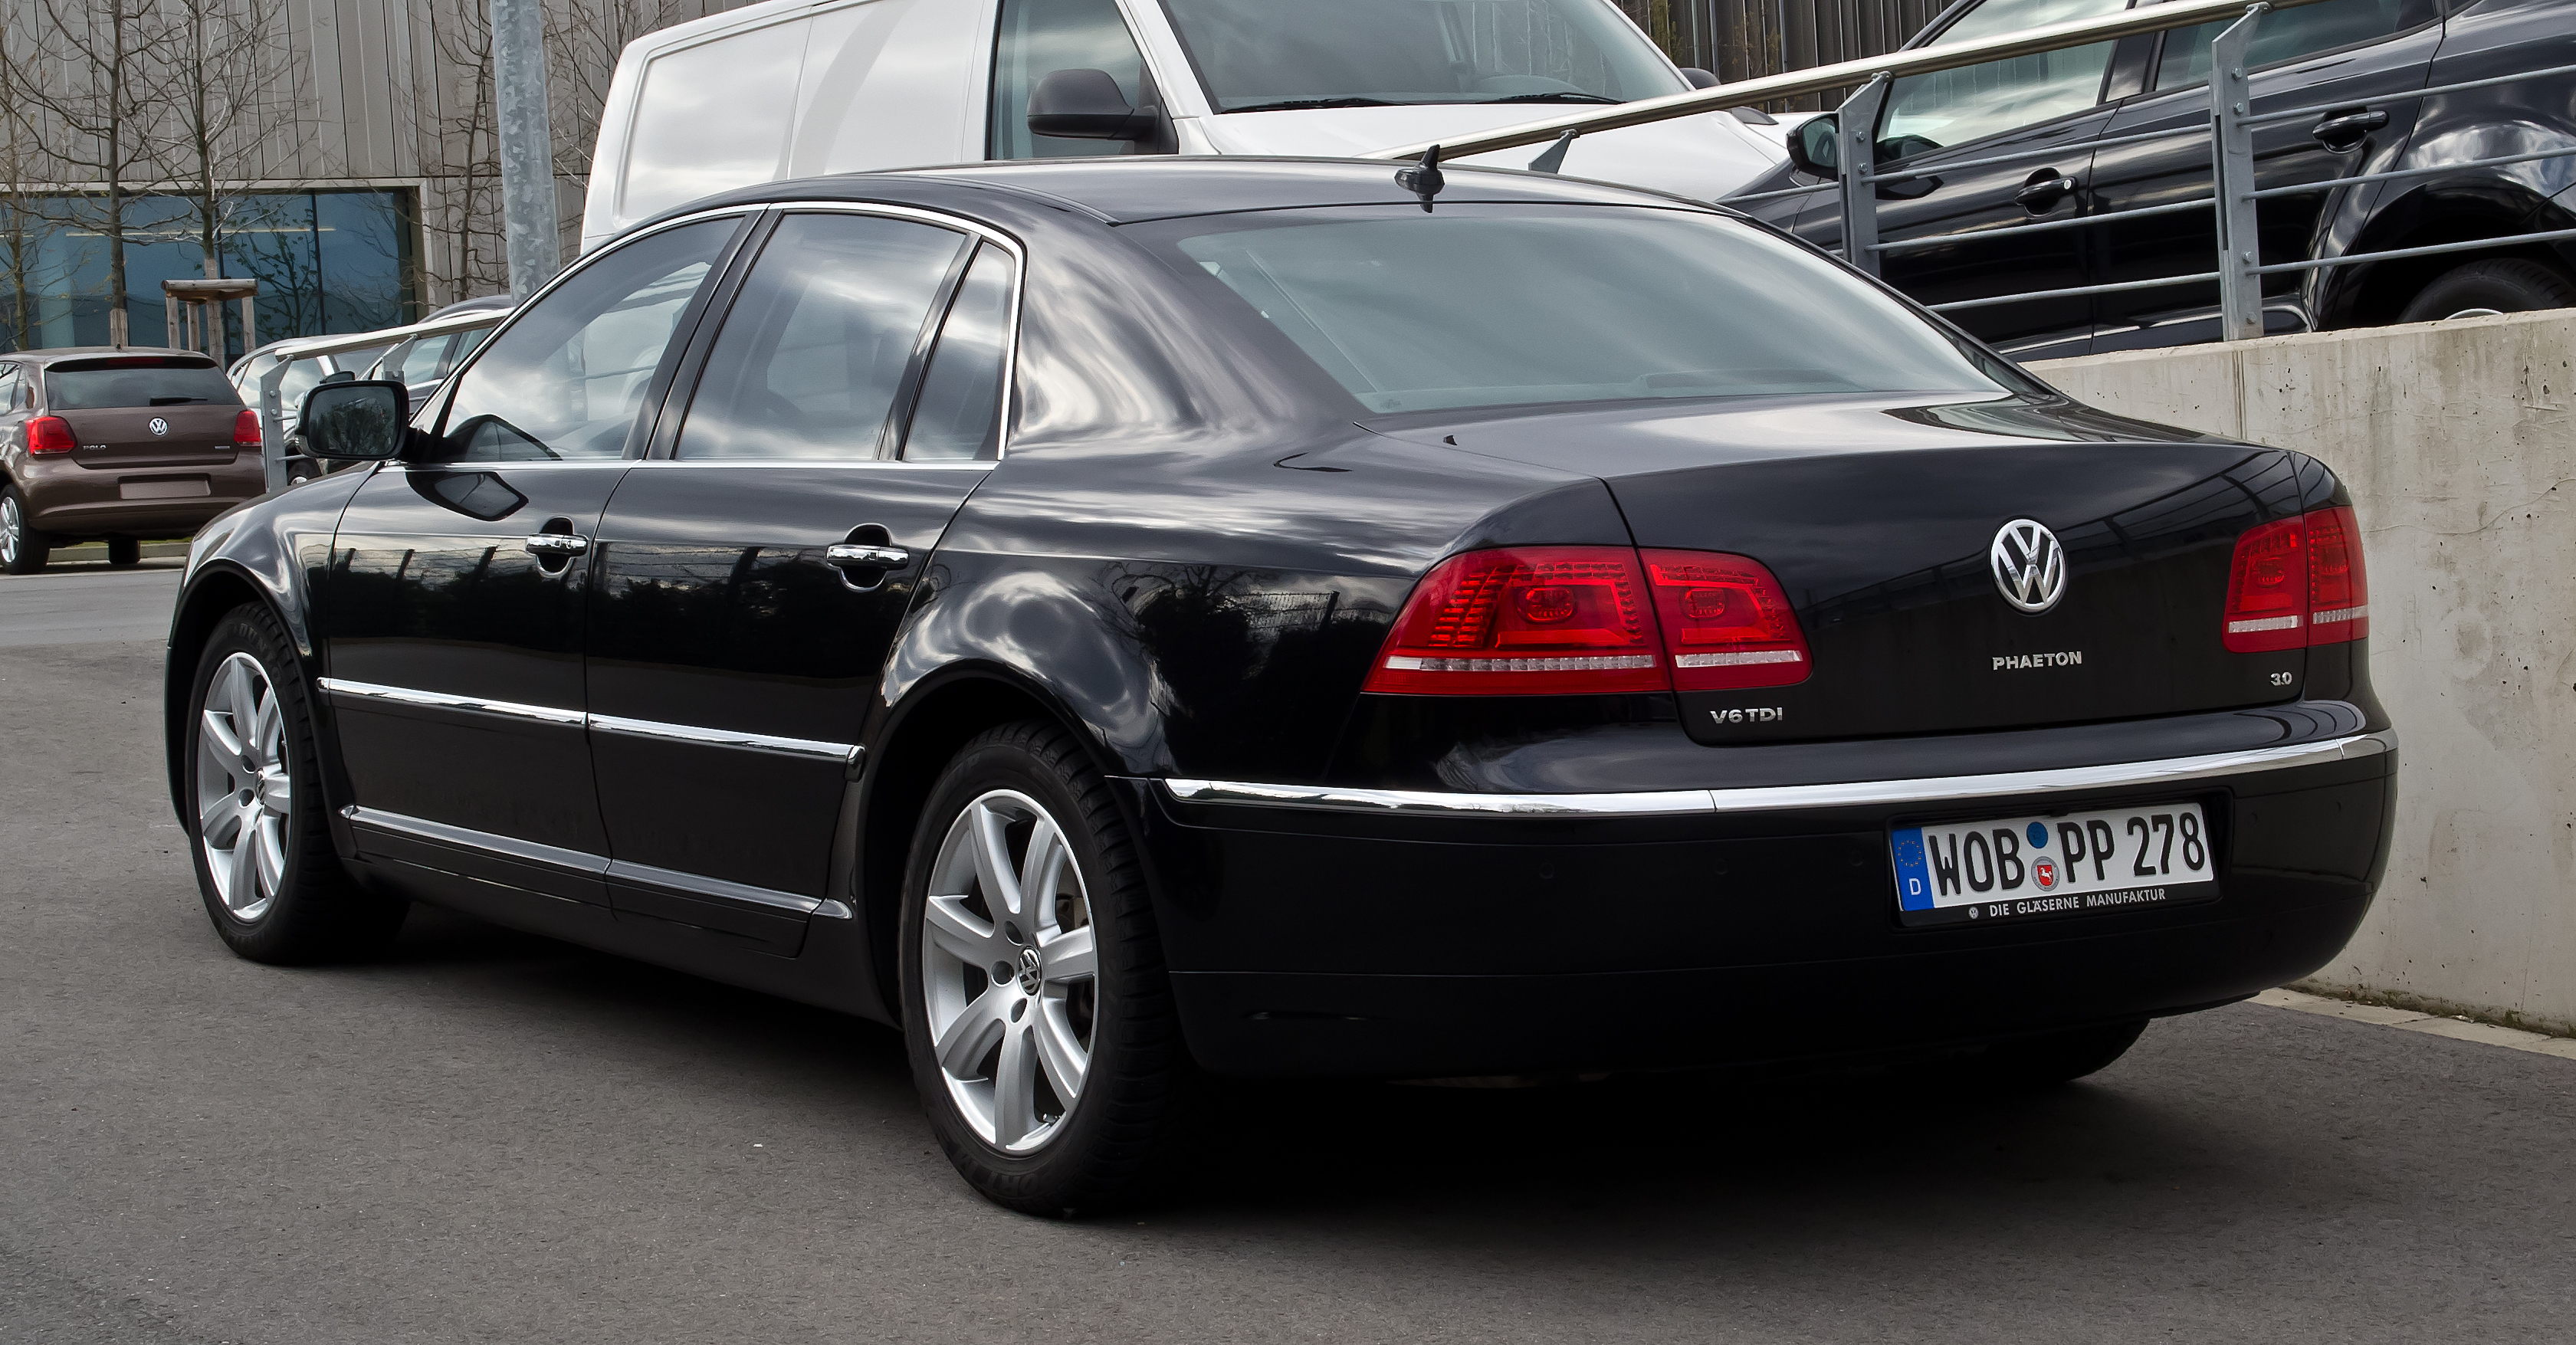 Volkswagen phaeton second facelift